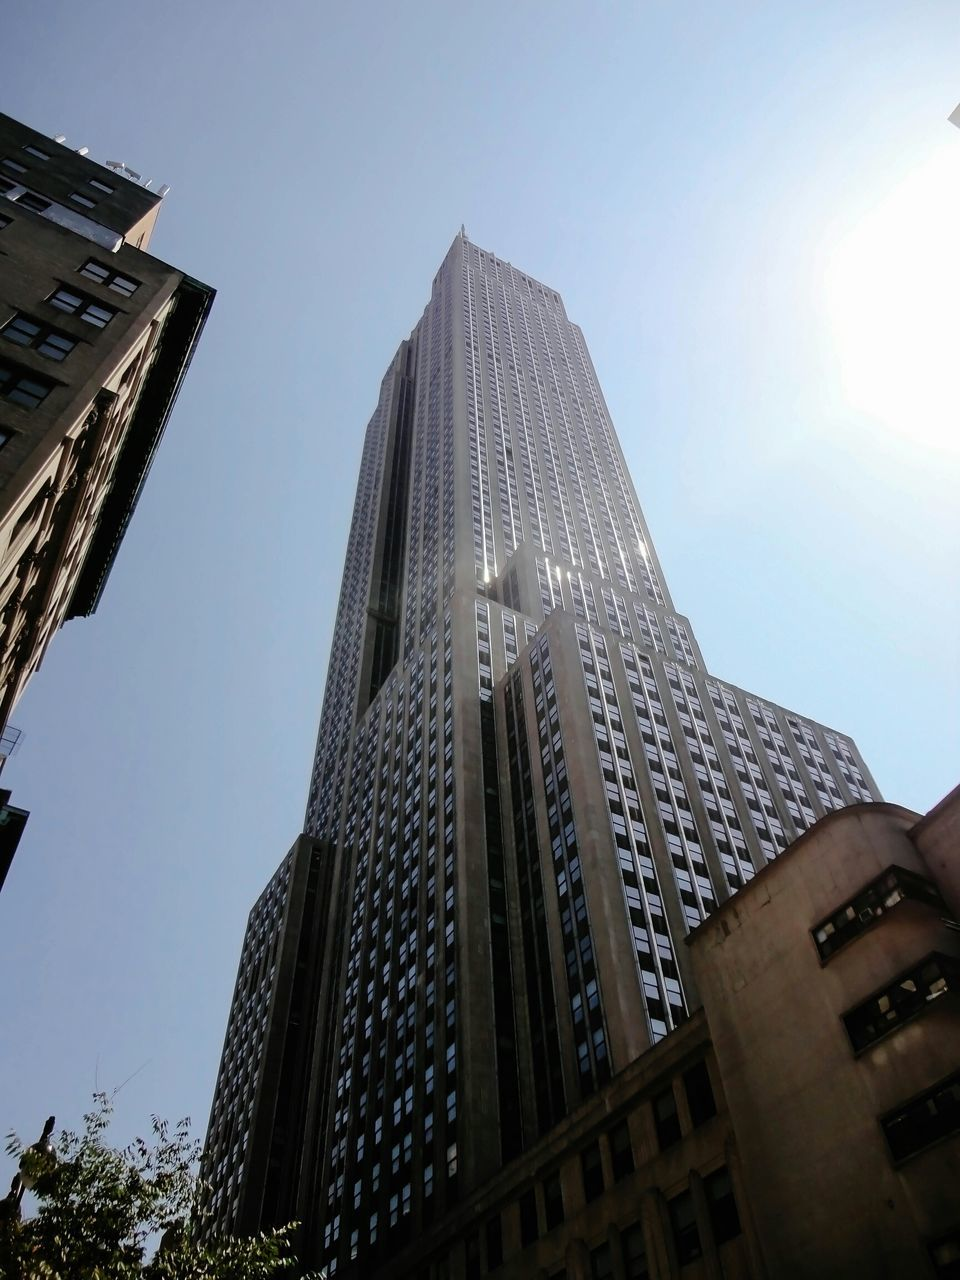 architecture, building exterior, built structure, low angle view, skyscraper, tower, modern, city, day, outdoors, clear sky, travel destinations, sky, no people, sunlight